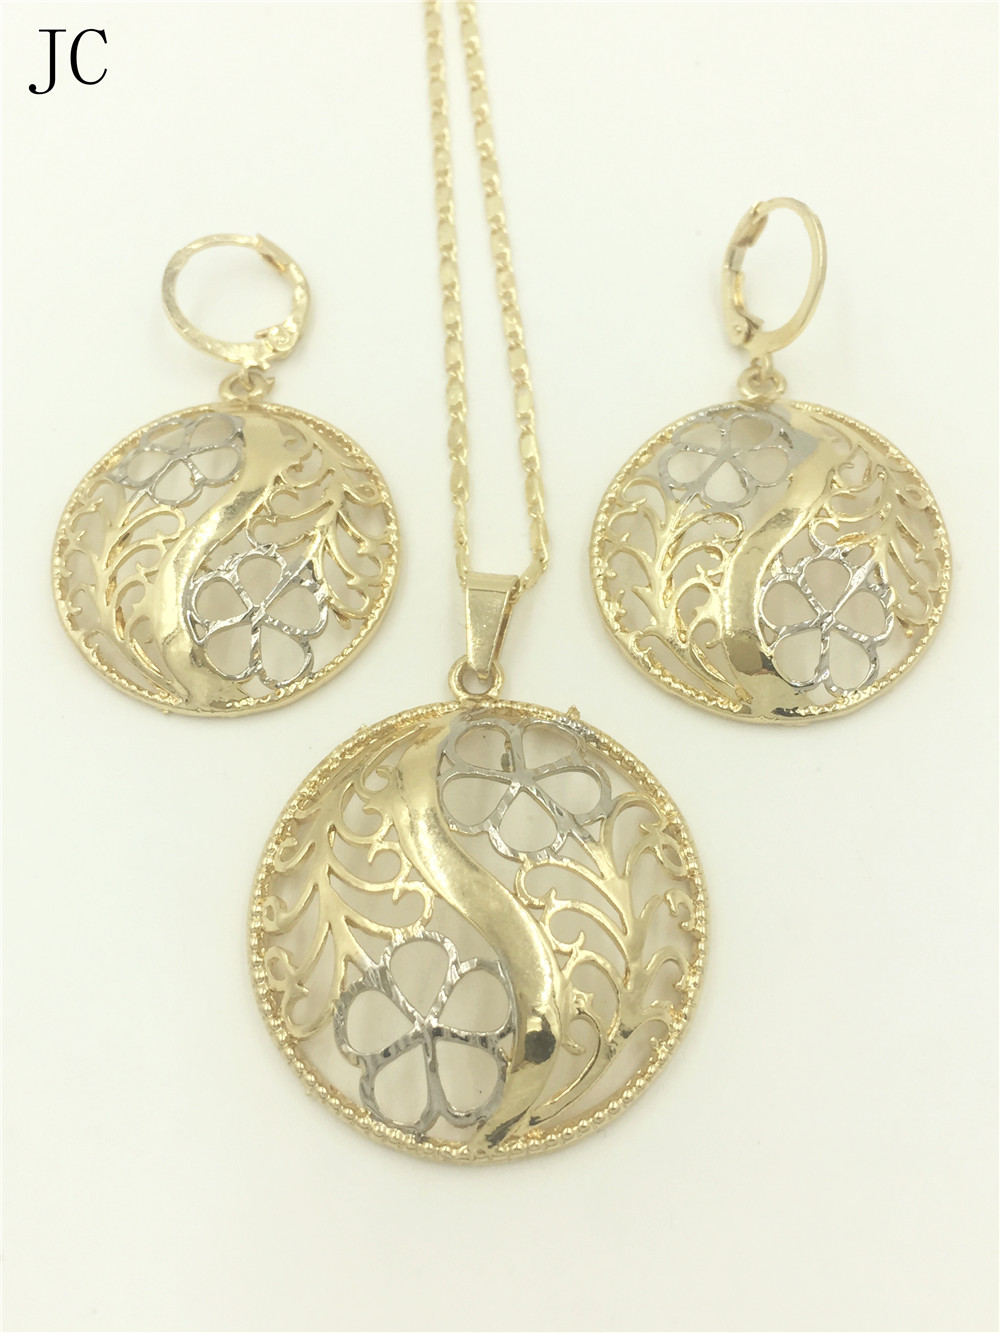 Women jewelry sets dubai 2016 design gold color two tone earrings women jewelry sets dubai 2016 design gold color two tone earrings pendant necklace in jewelry sets from jewelry accessories on aliexpress alibaba aloadofball Gallery